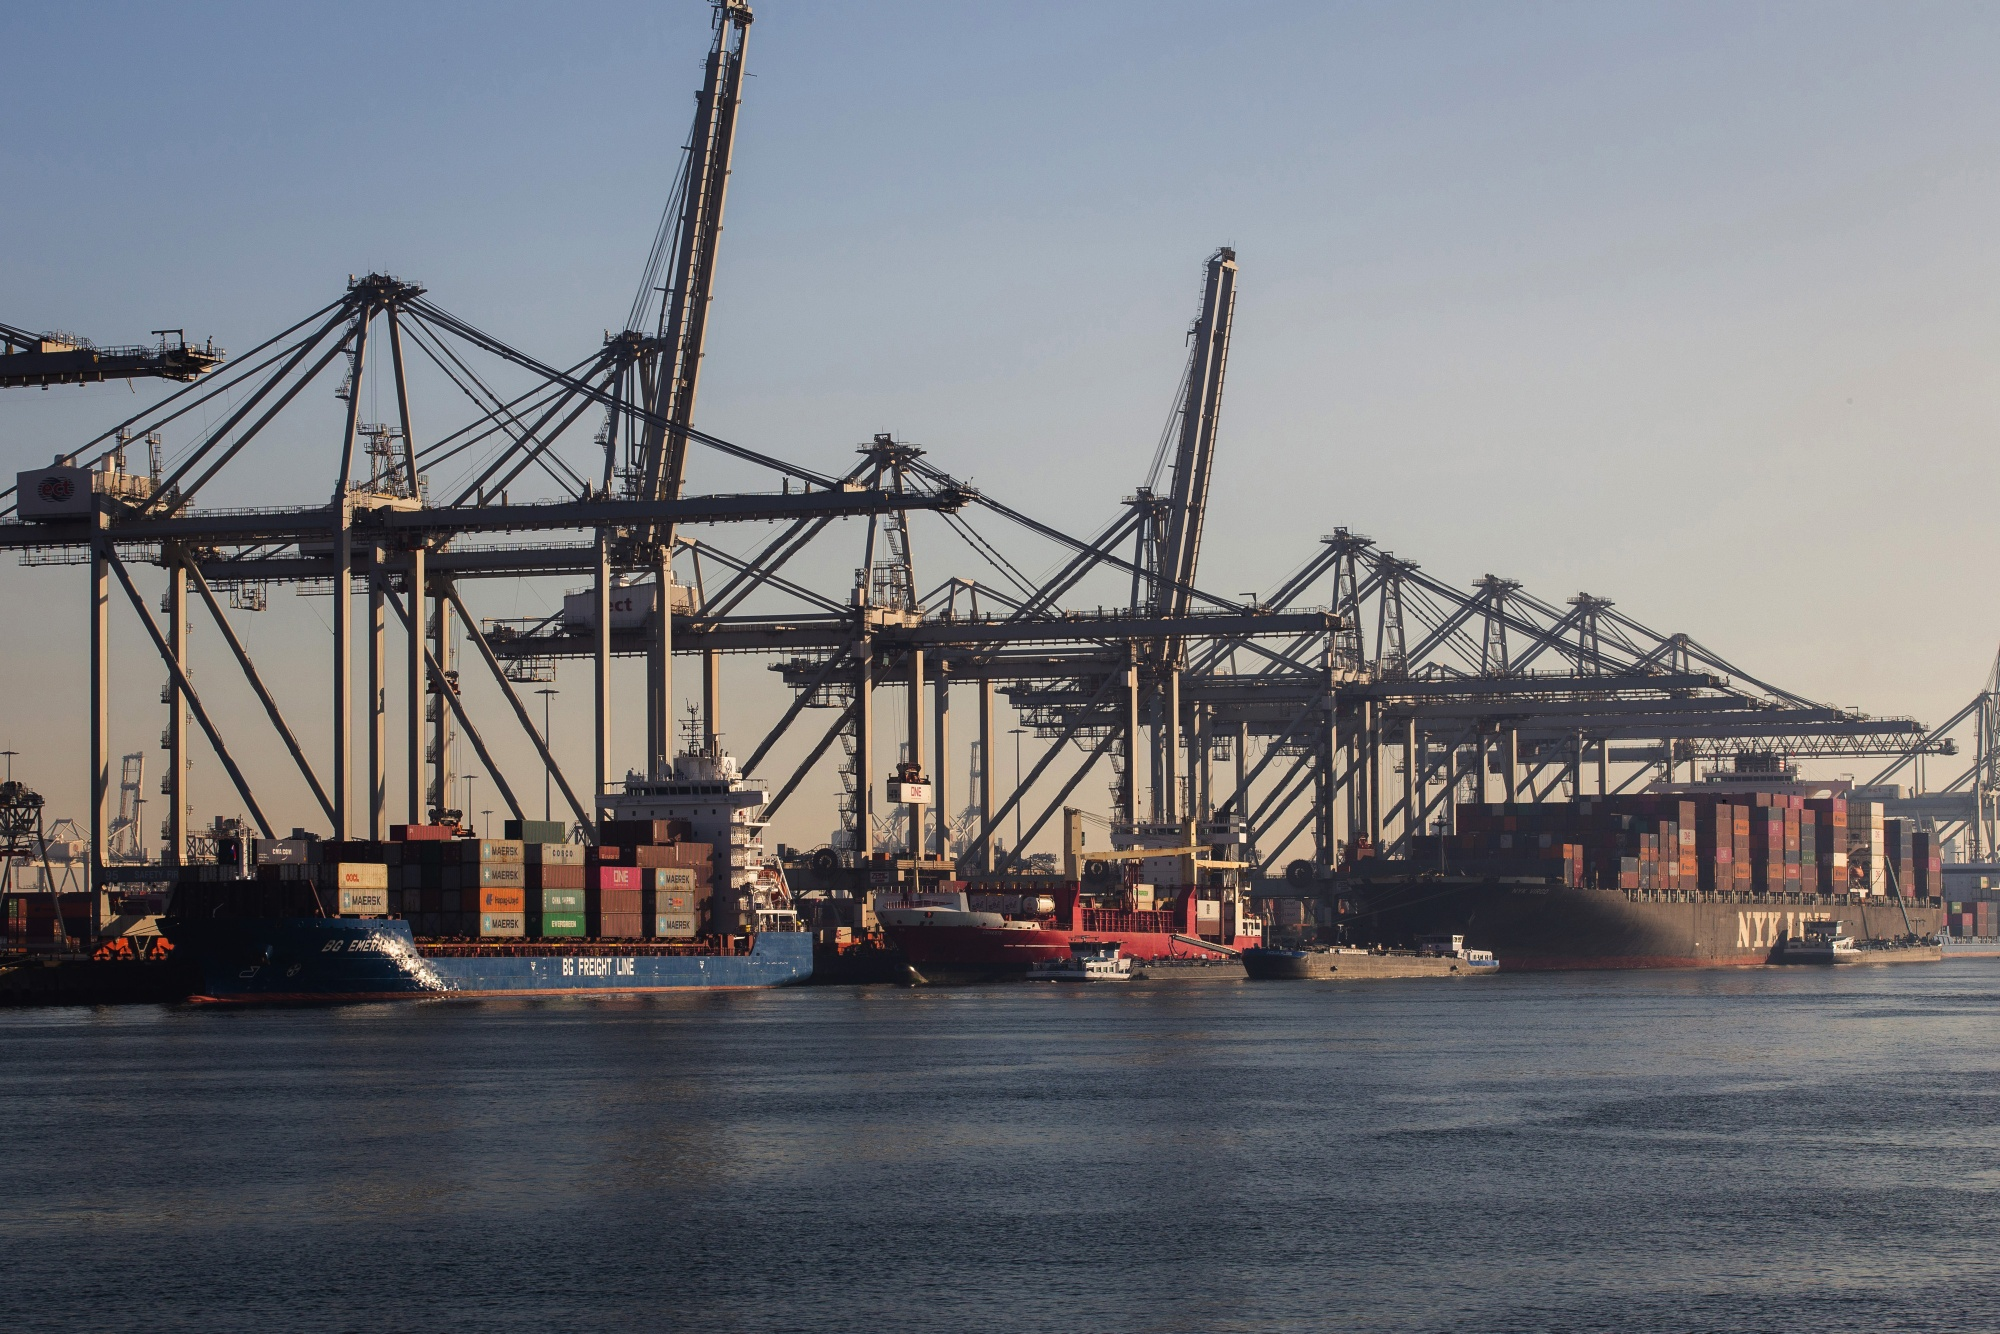 Container Shipping Operations at Europe's Largest Port Ahead of Dutch GDP